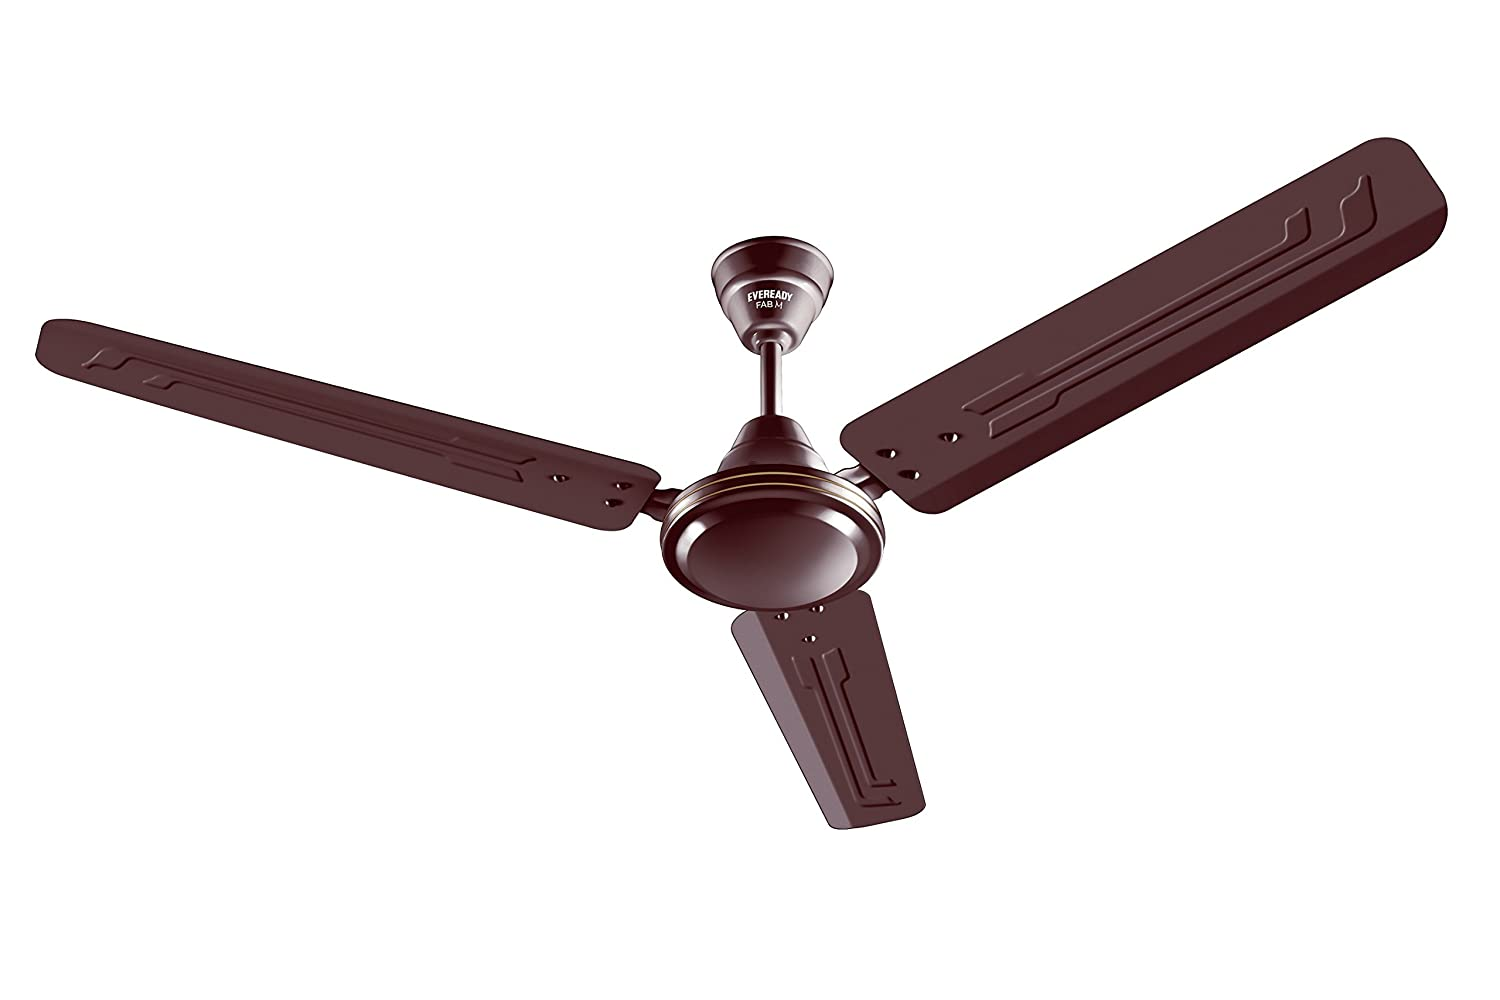 Buy eveready fab m 1200mm 3 blades ceiling fan brown online at low buy eveready fab m 1200mm 3 blades ceiling fan brown online at low prices in india amazon mozeypictures Choice Image